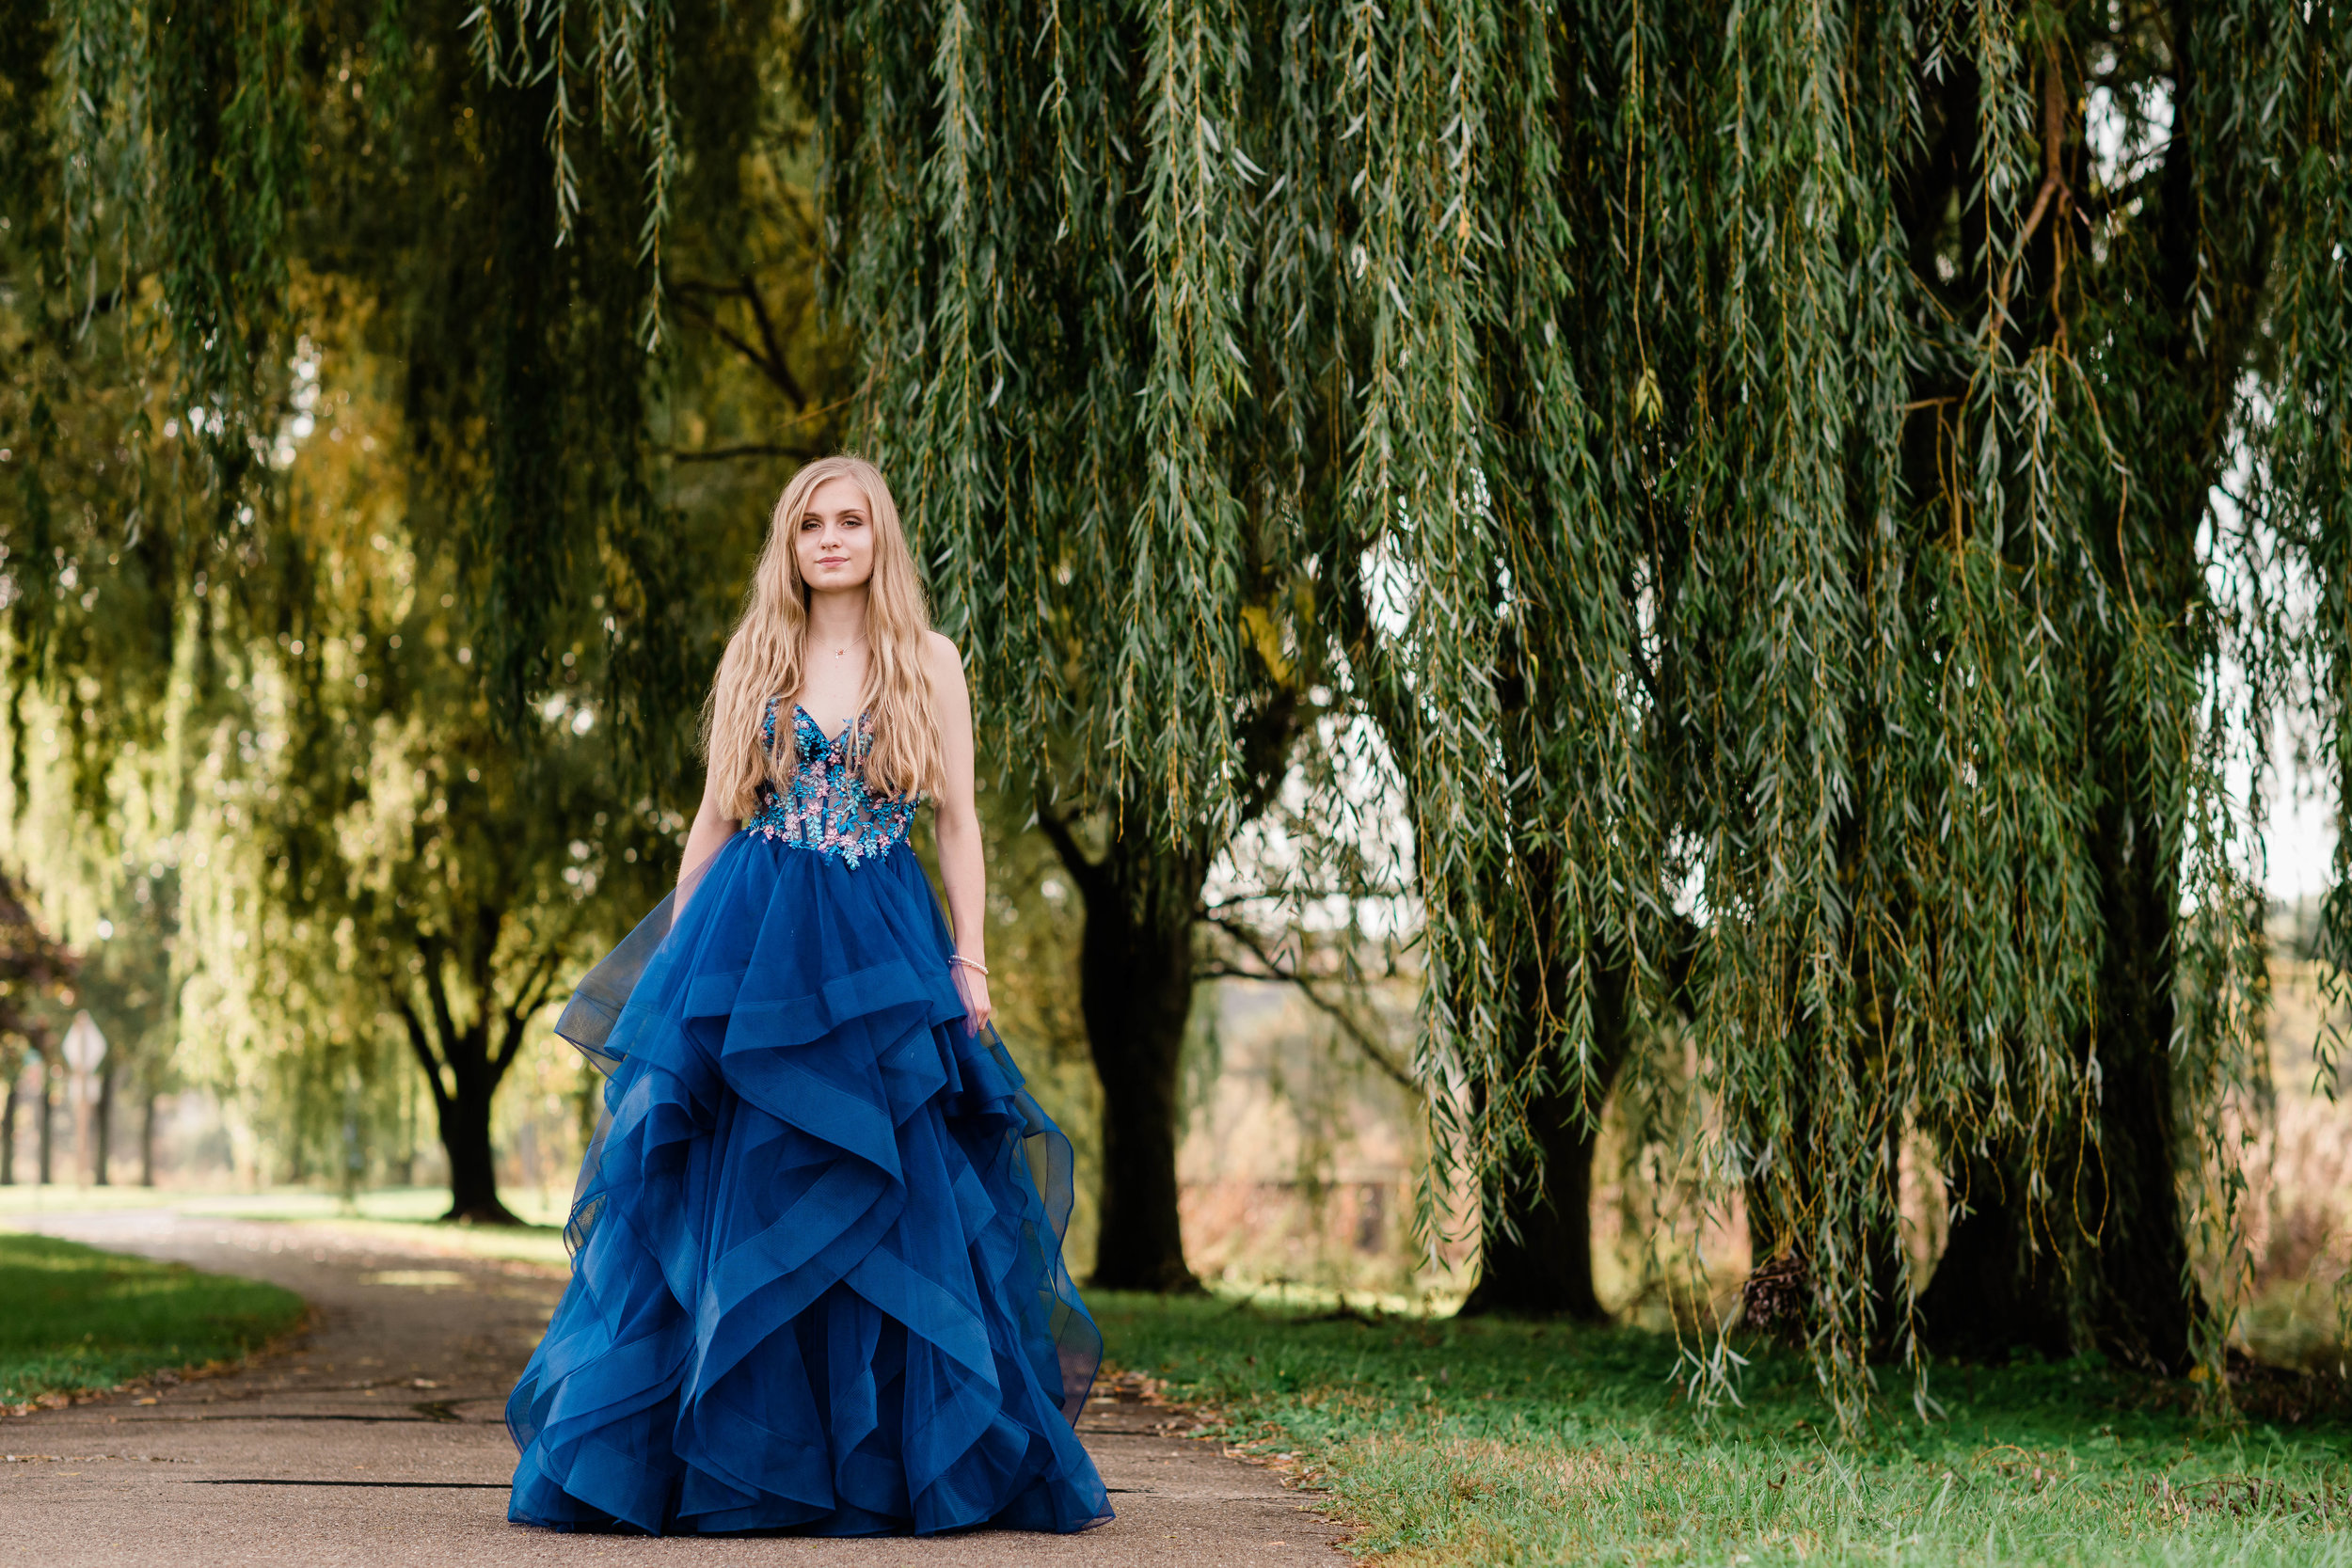 High school senior wears her prom dress